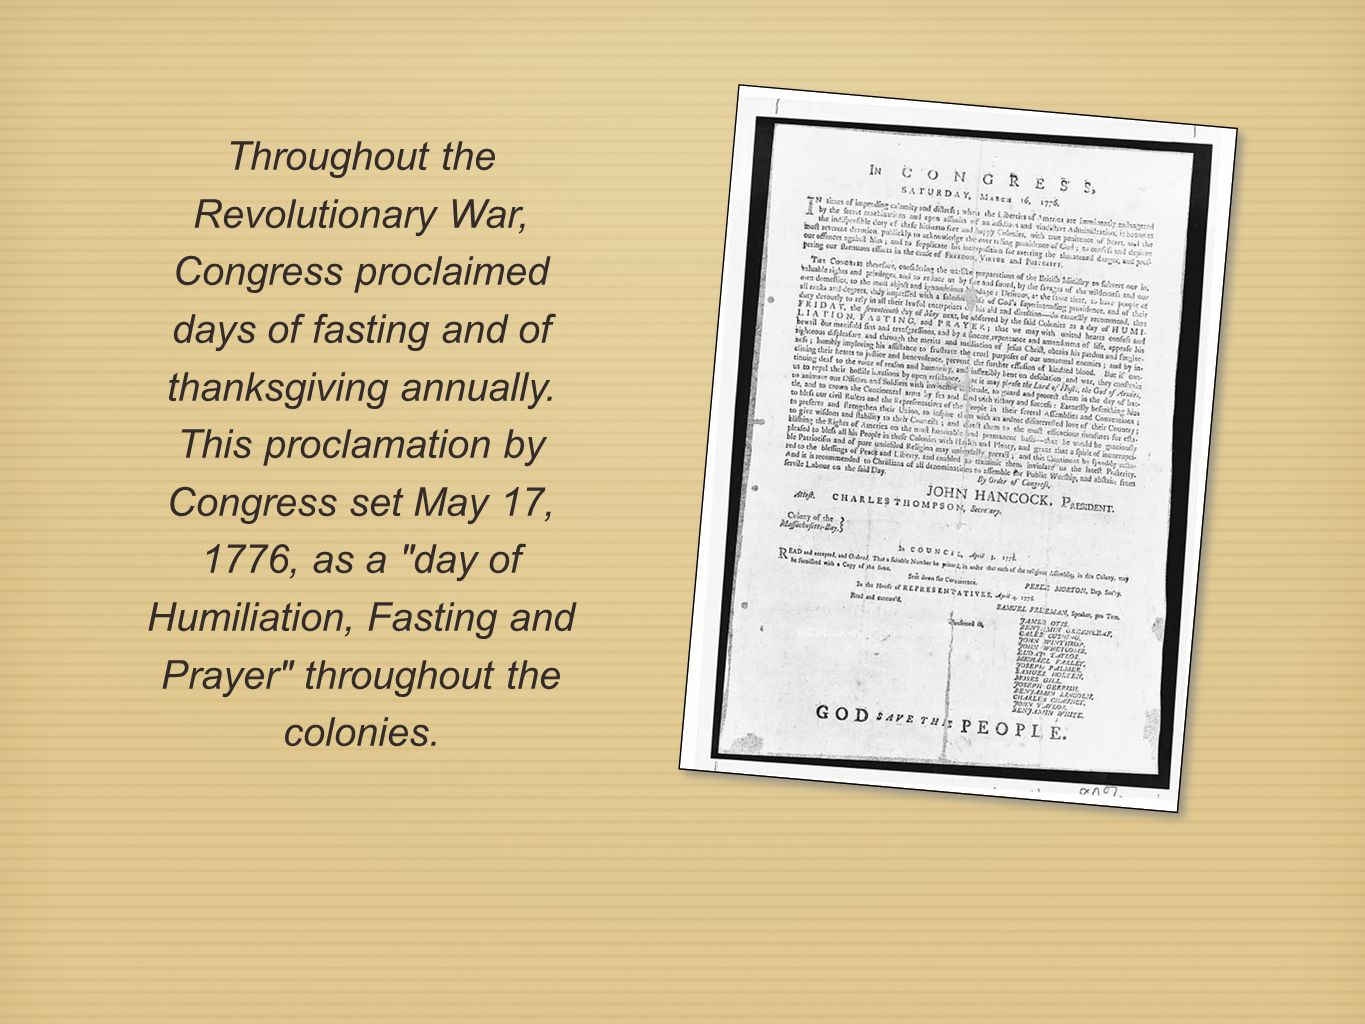 Throughout the Revolutionary War, Congress proclaimed days of fasting and of thanksgiving annually.